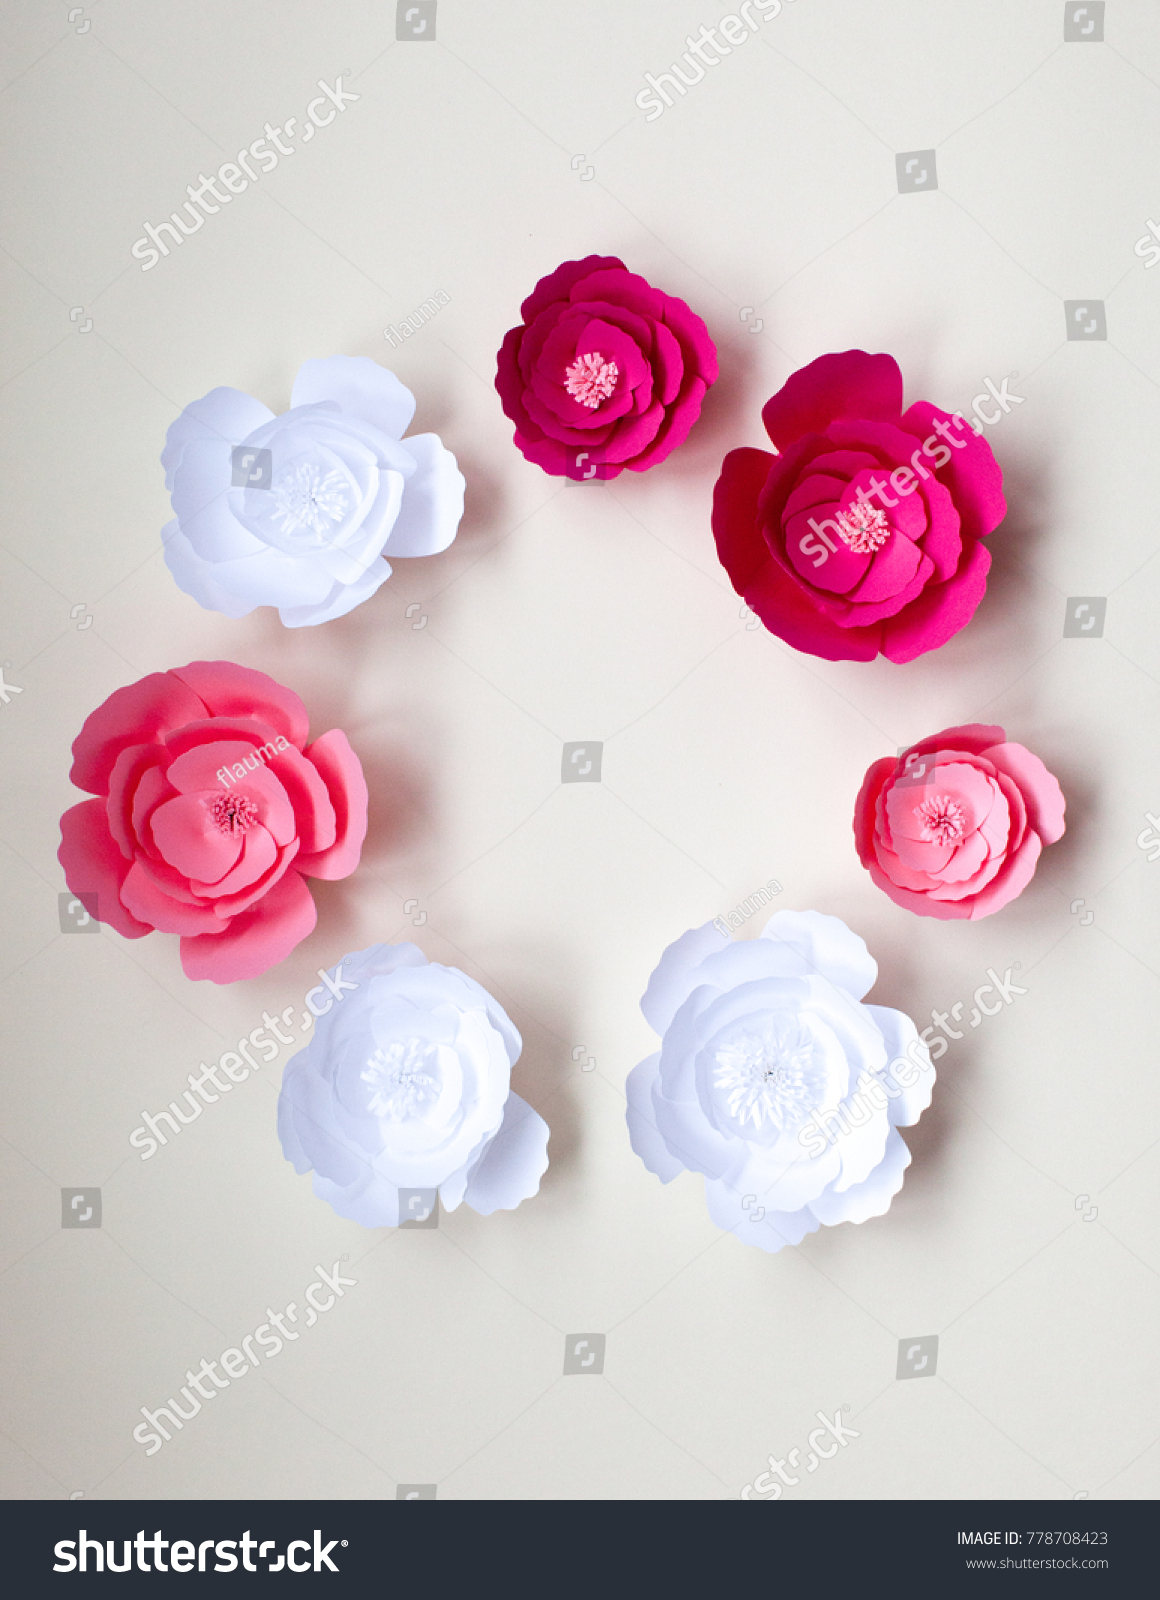 Handmade Paper Flowers On Paper Background Stock Photo Edit Now